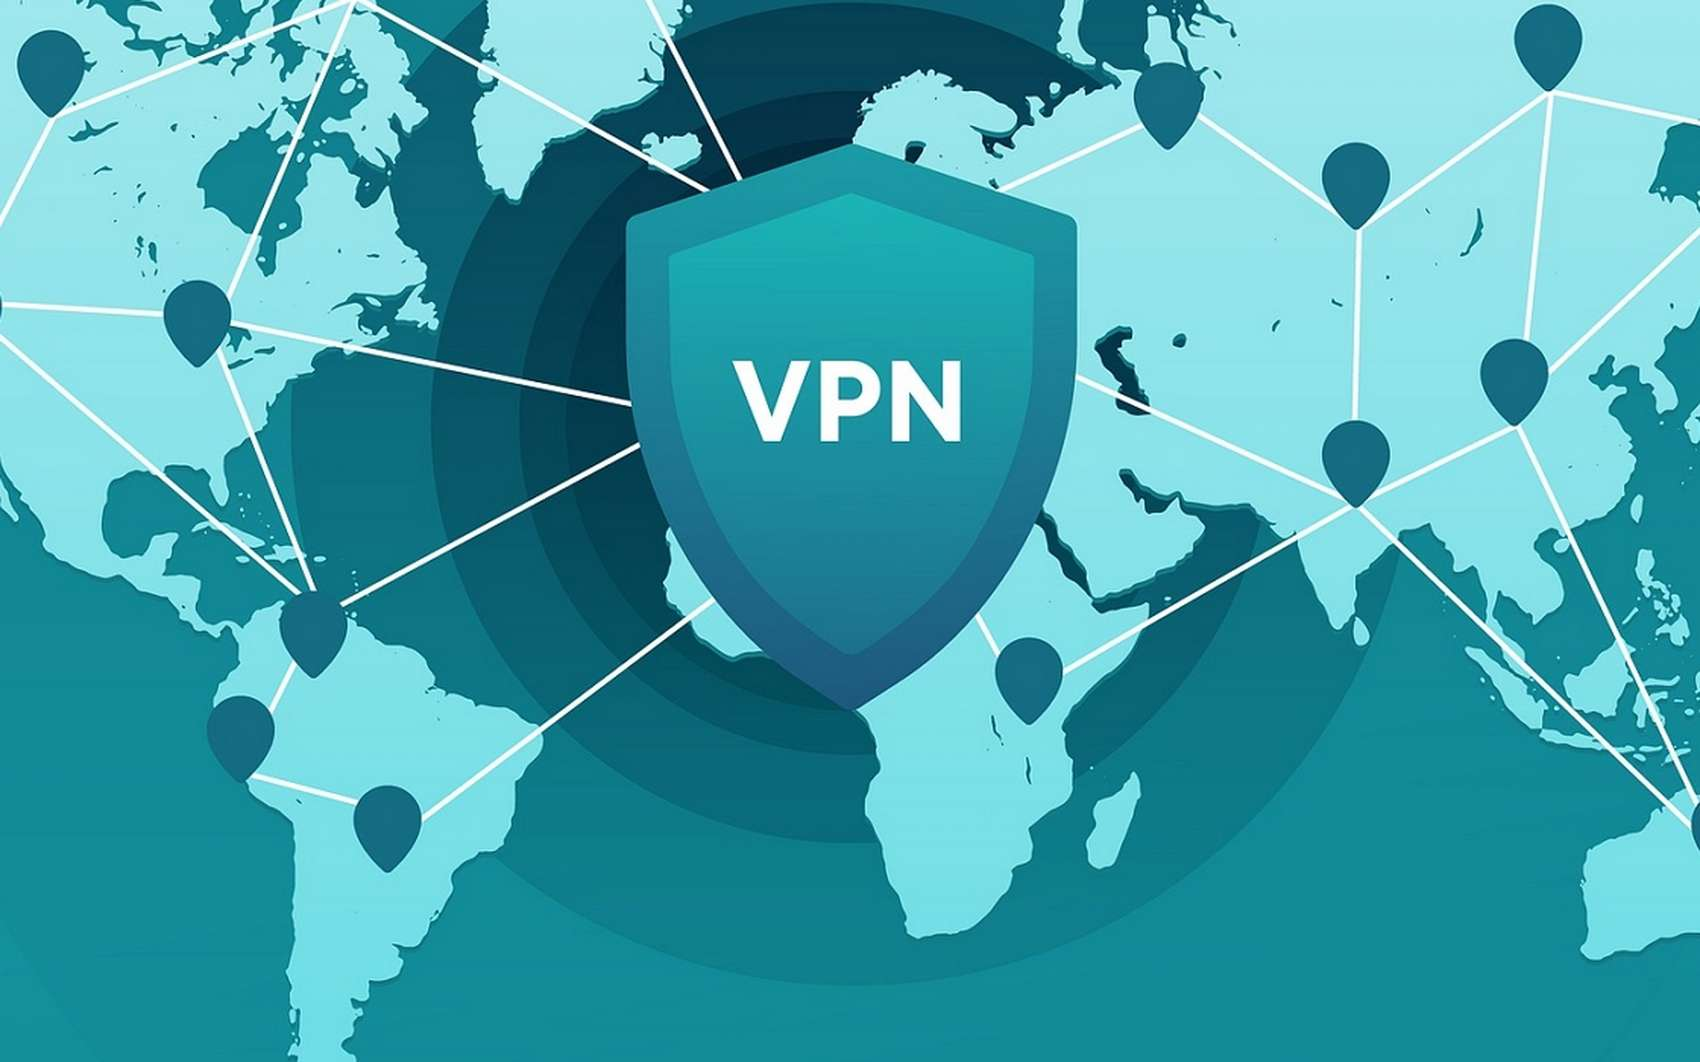 Security tips for using VPN